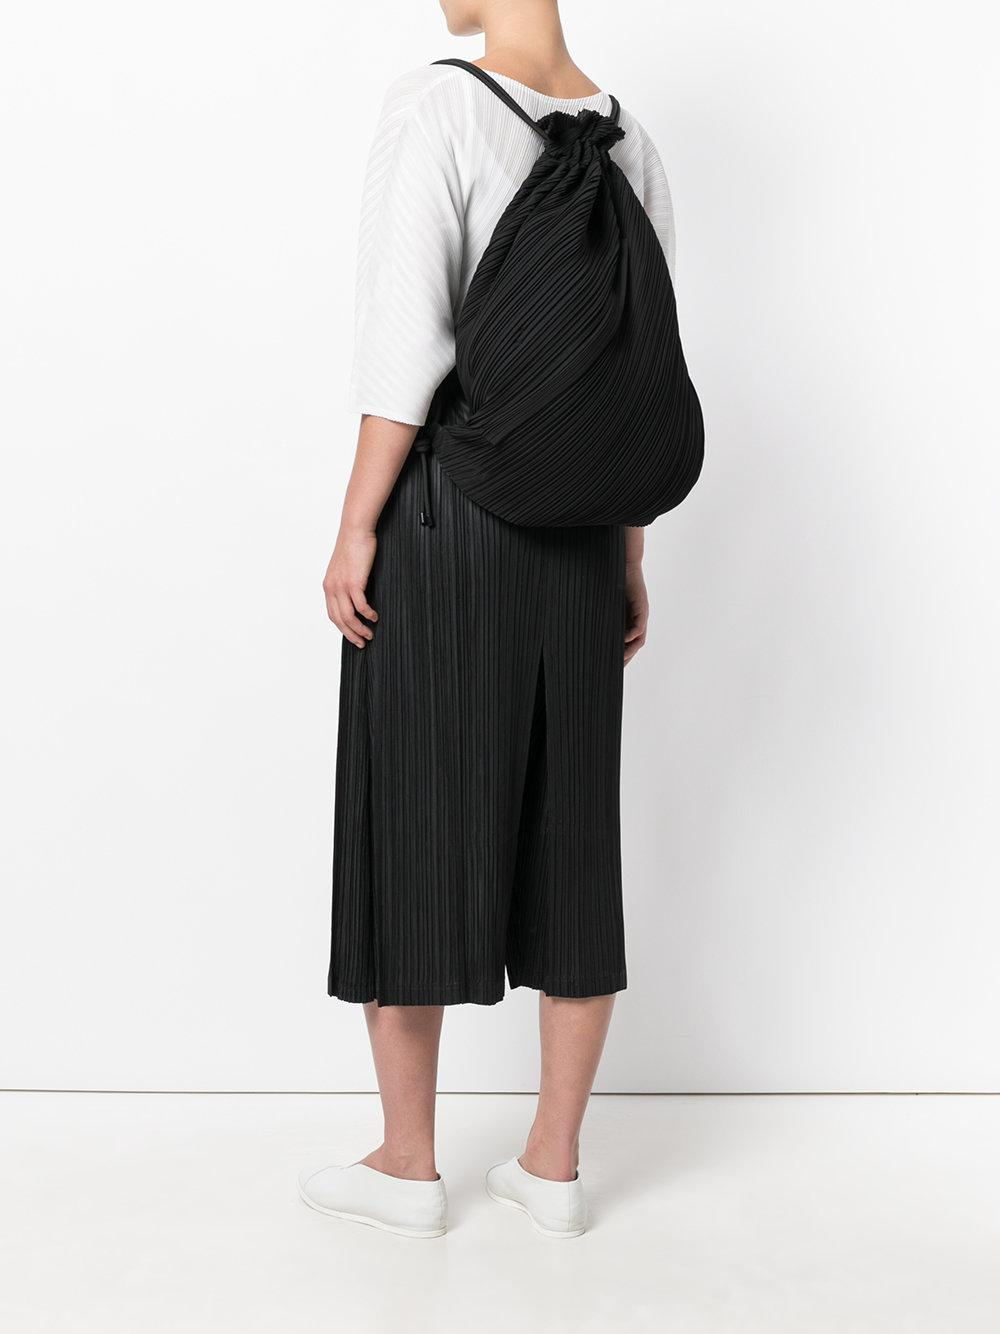 Lyst - Pleats Please Issey Miyake Pleated Drawstring Backpack in Black 07119a3a09a85